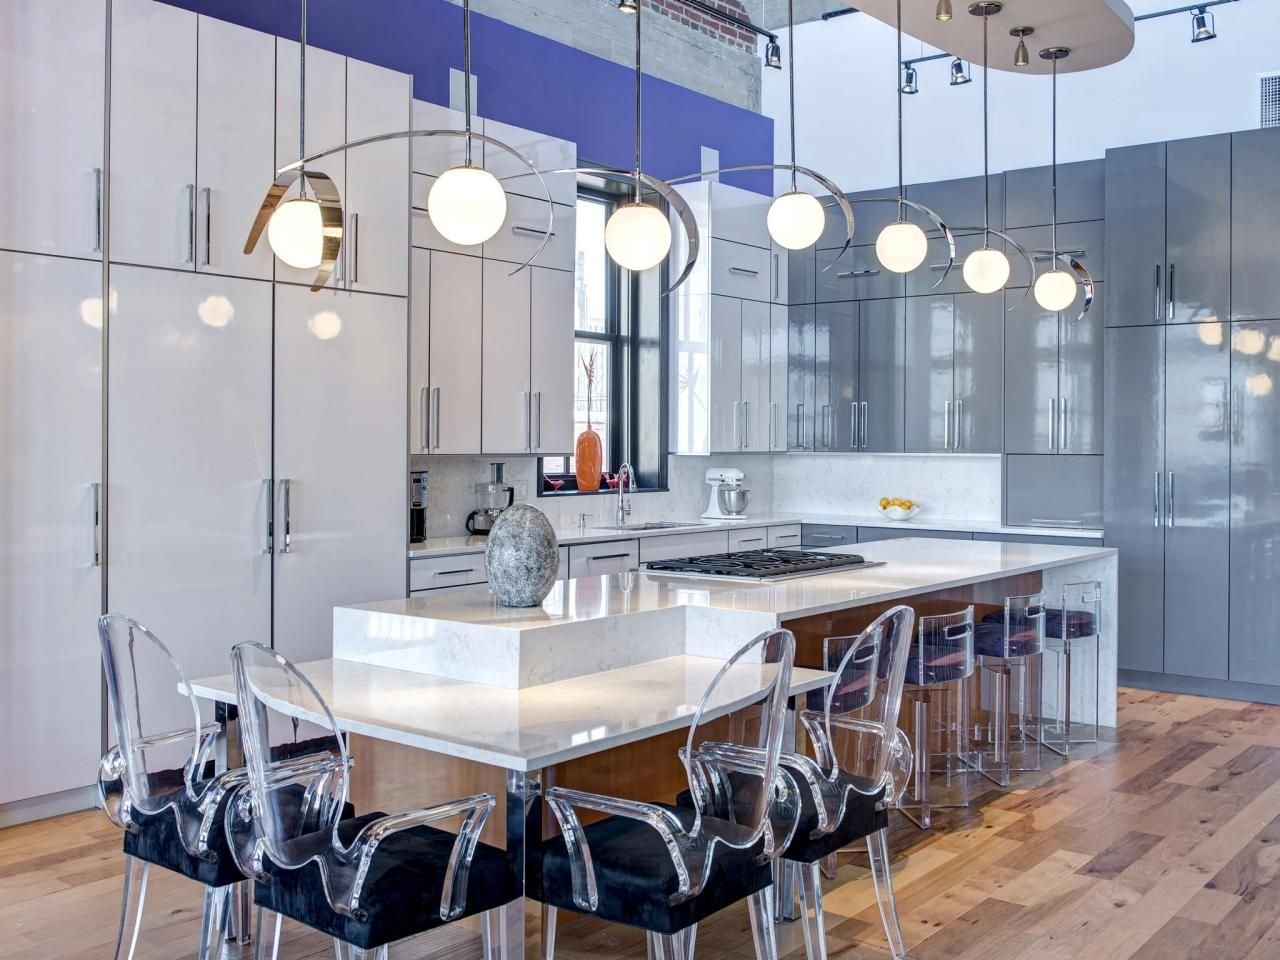 White Quartz Countertop Combined With High Gloss Cabinetry Give This Modern Kitchen A Clean Modern Kitchen Design Kitchen Design Modern White Kitchen Design